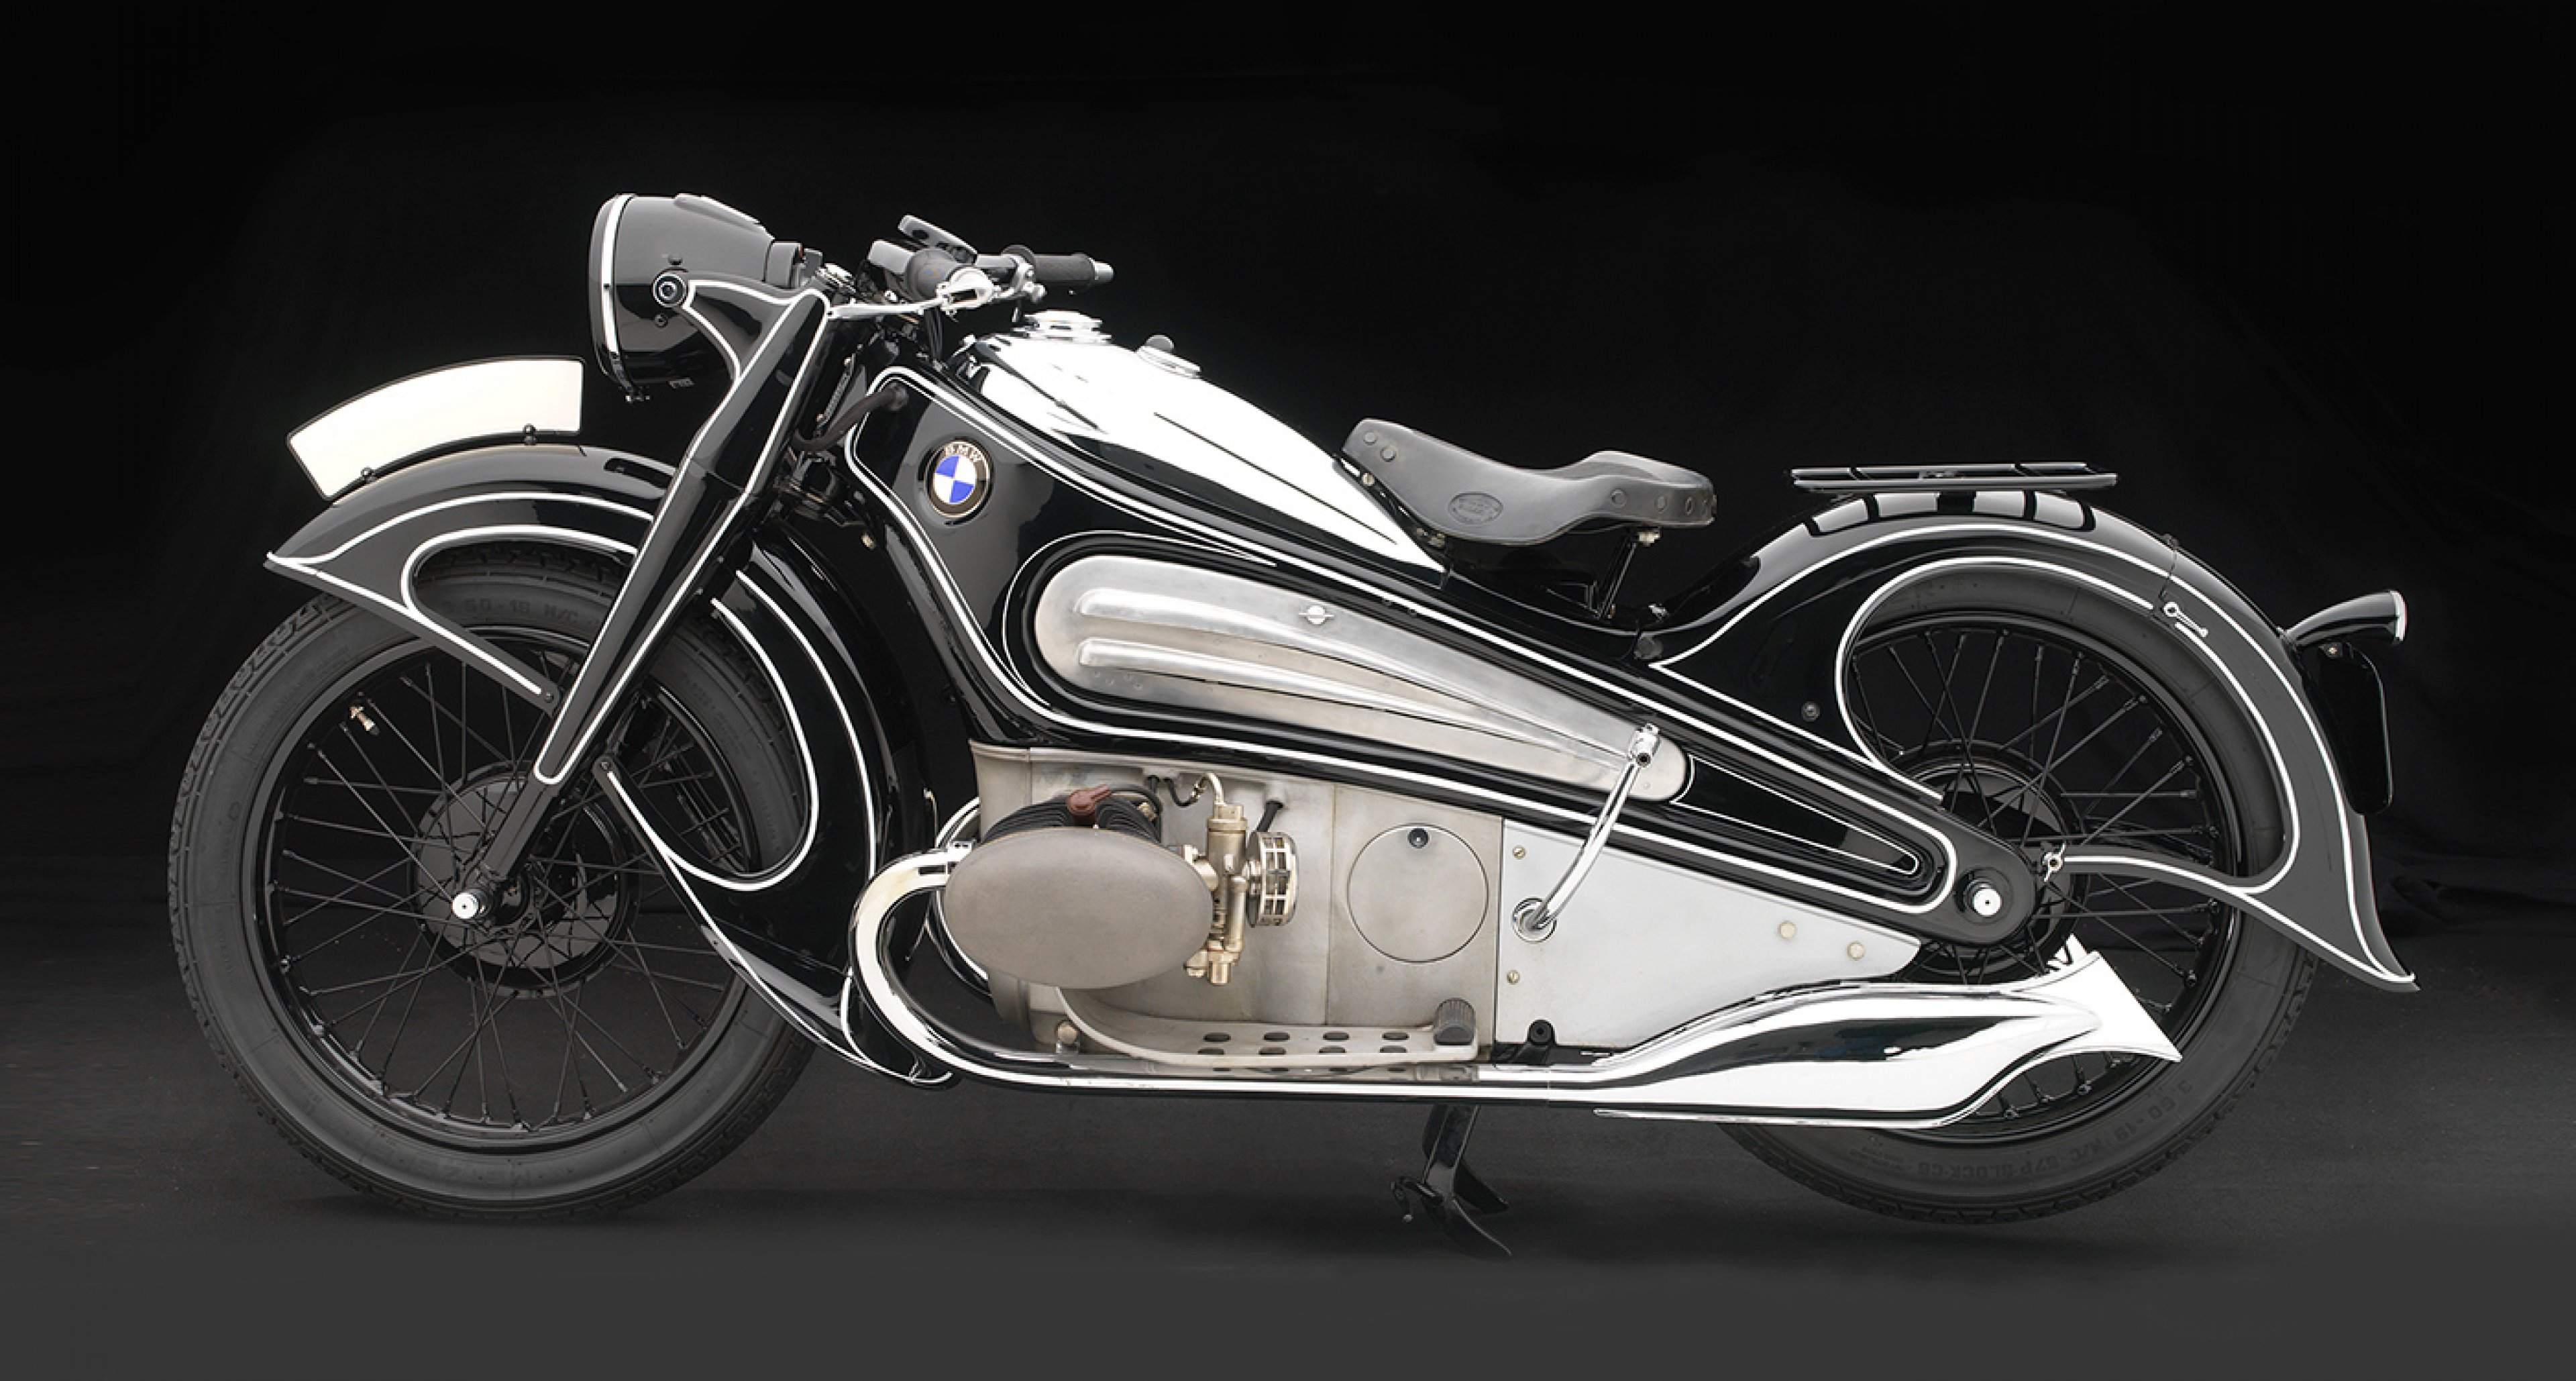 BMW R7 Concept Motorcycle, 1934, BMW Classic Collection; Photo © 2016 Peter Harholdt